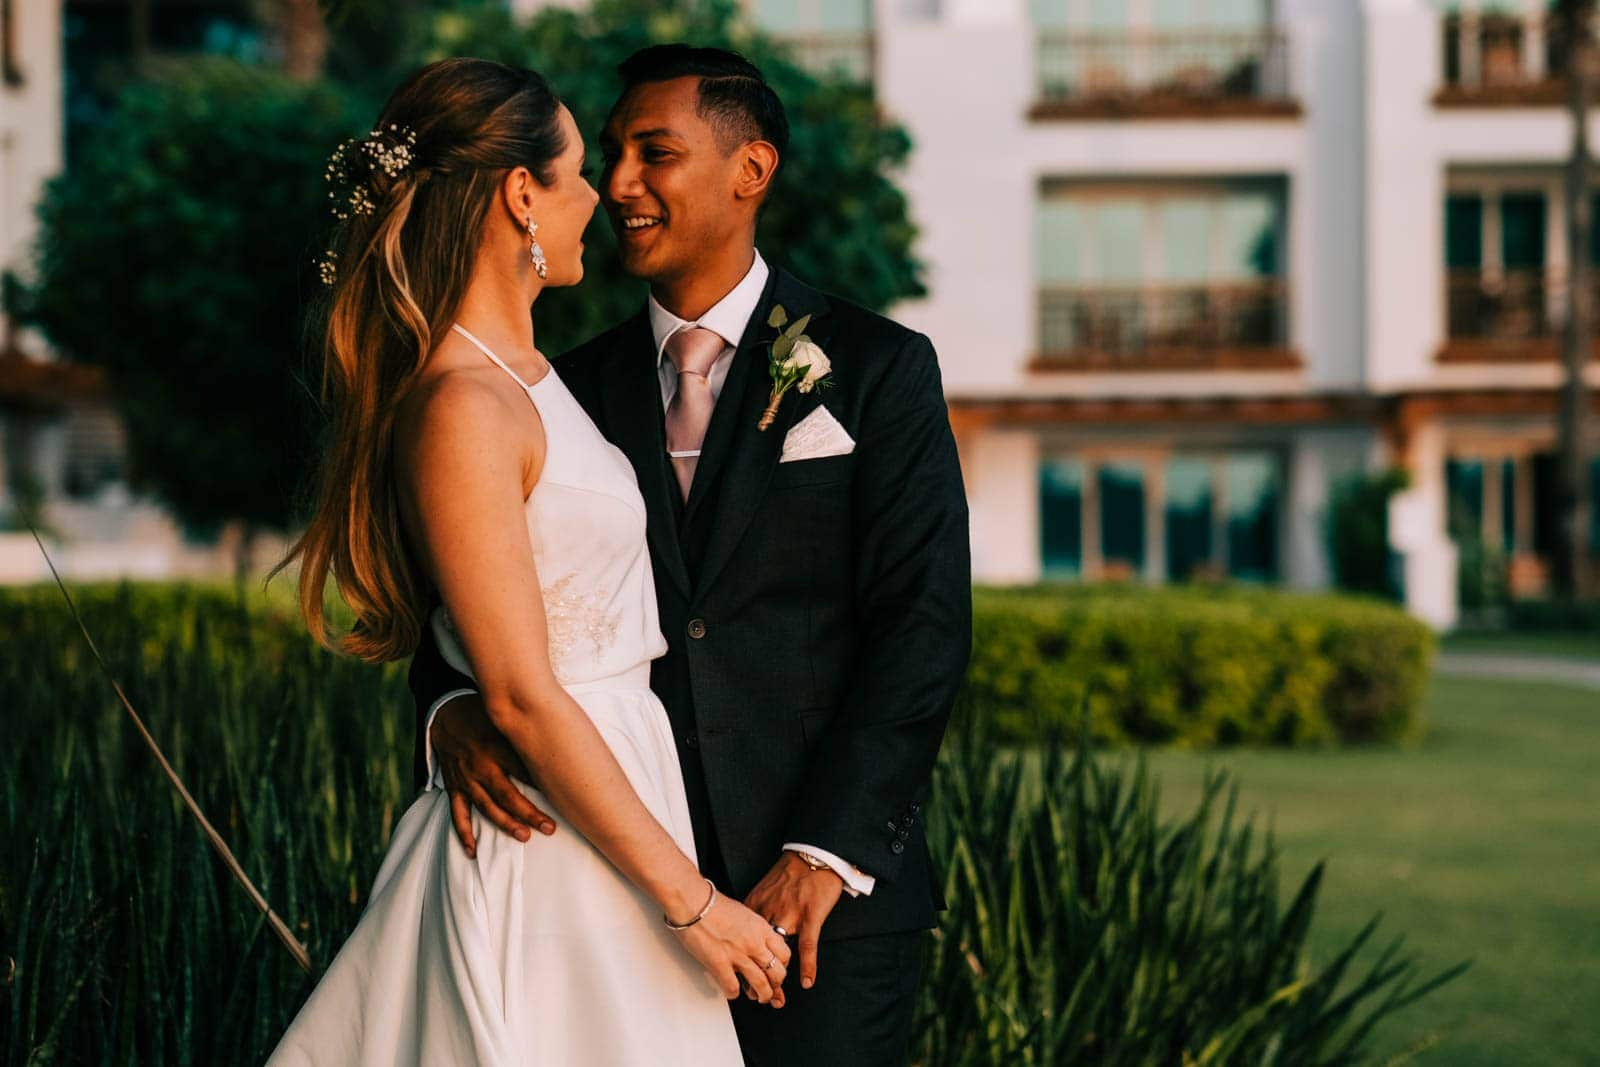 Bride and groom share a moment together at Park Hyatt Dubai